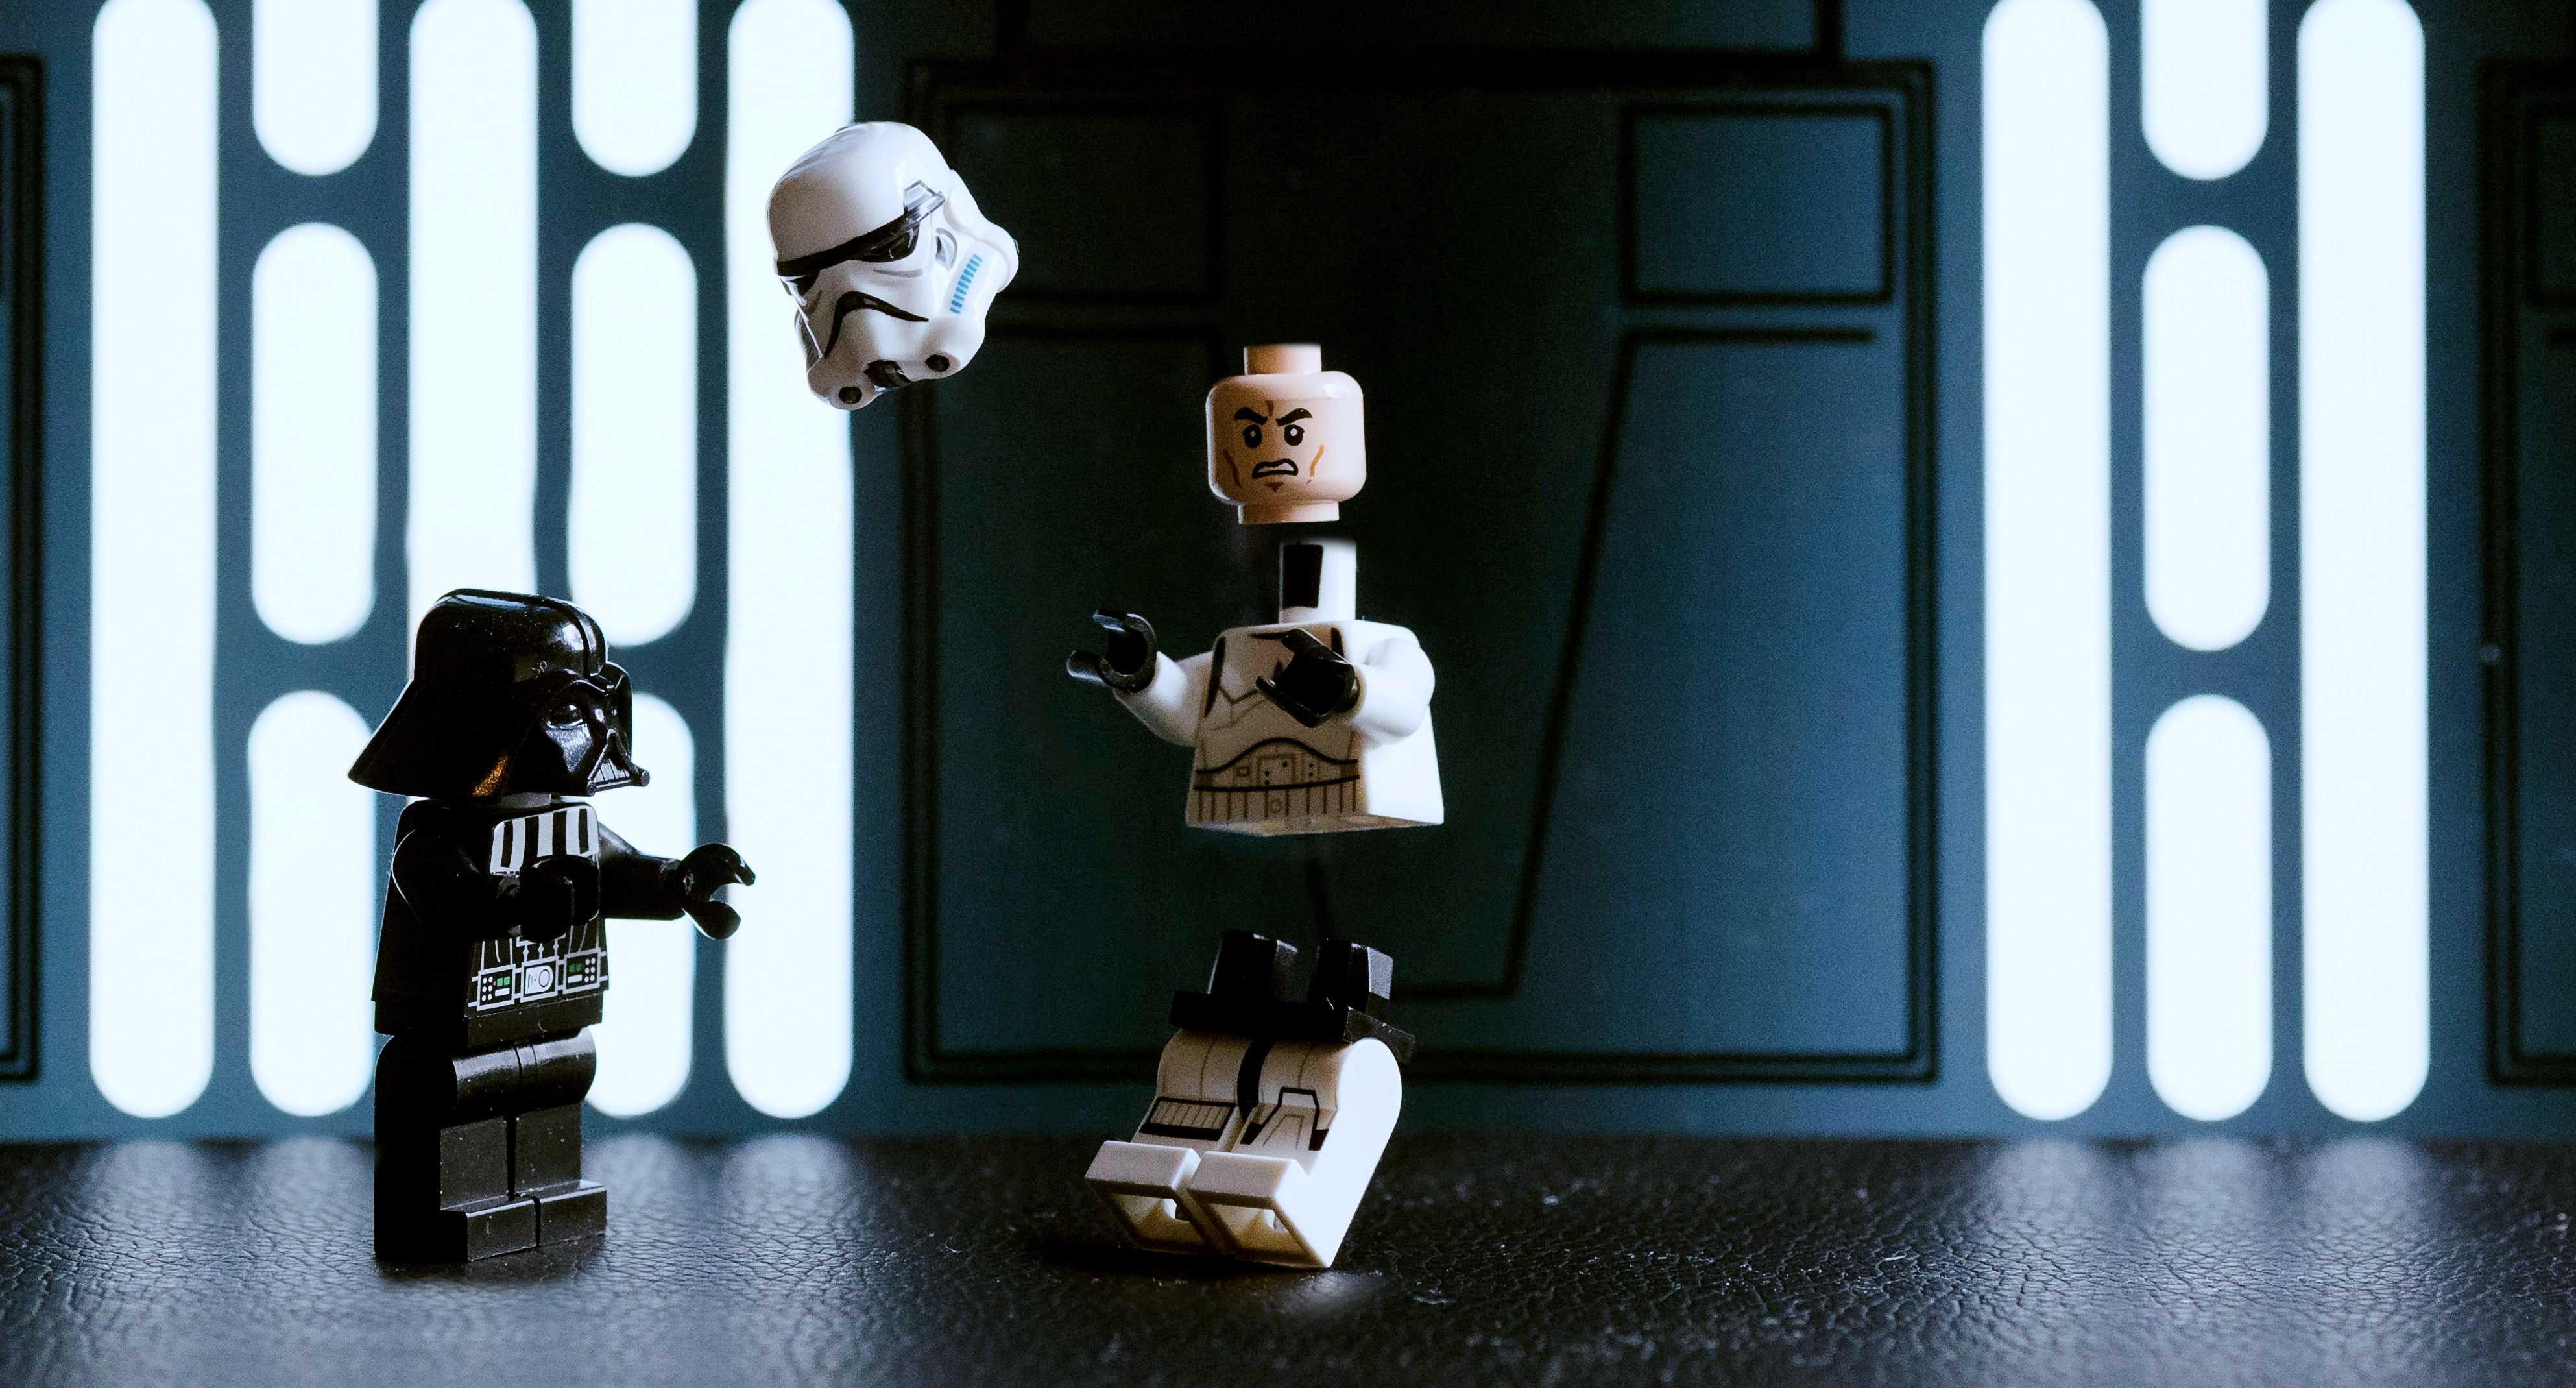 Darth Vader is a micromanaging boss